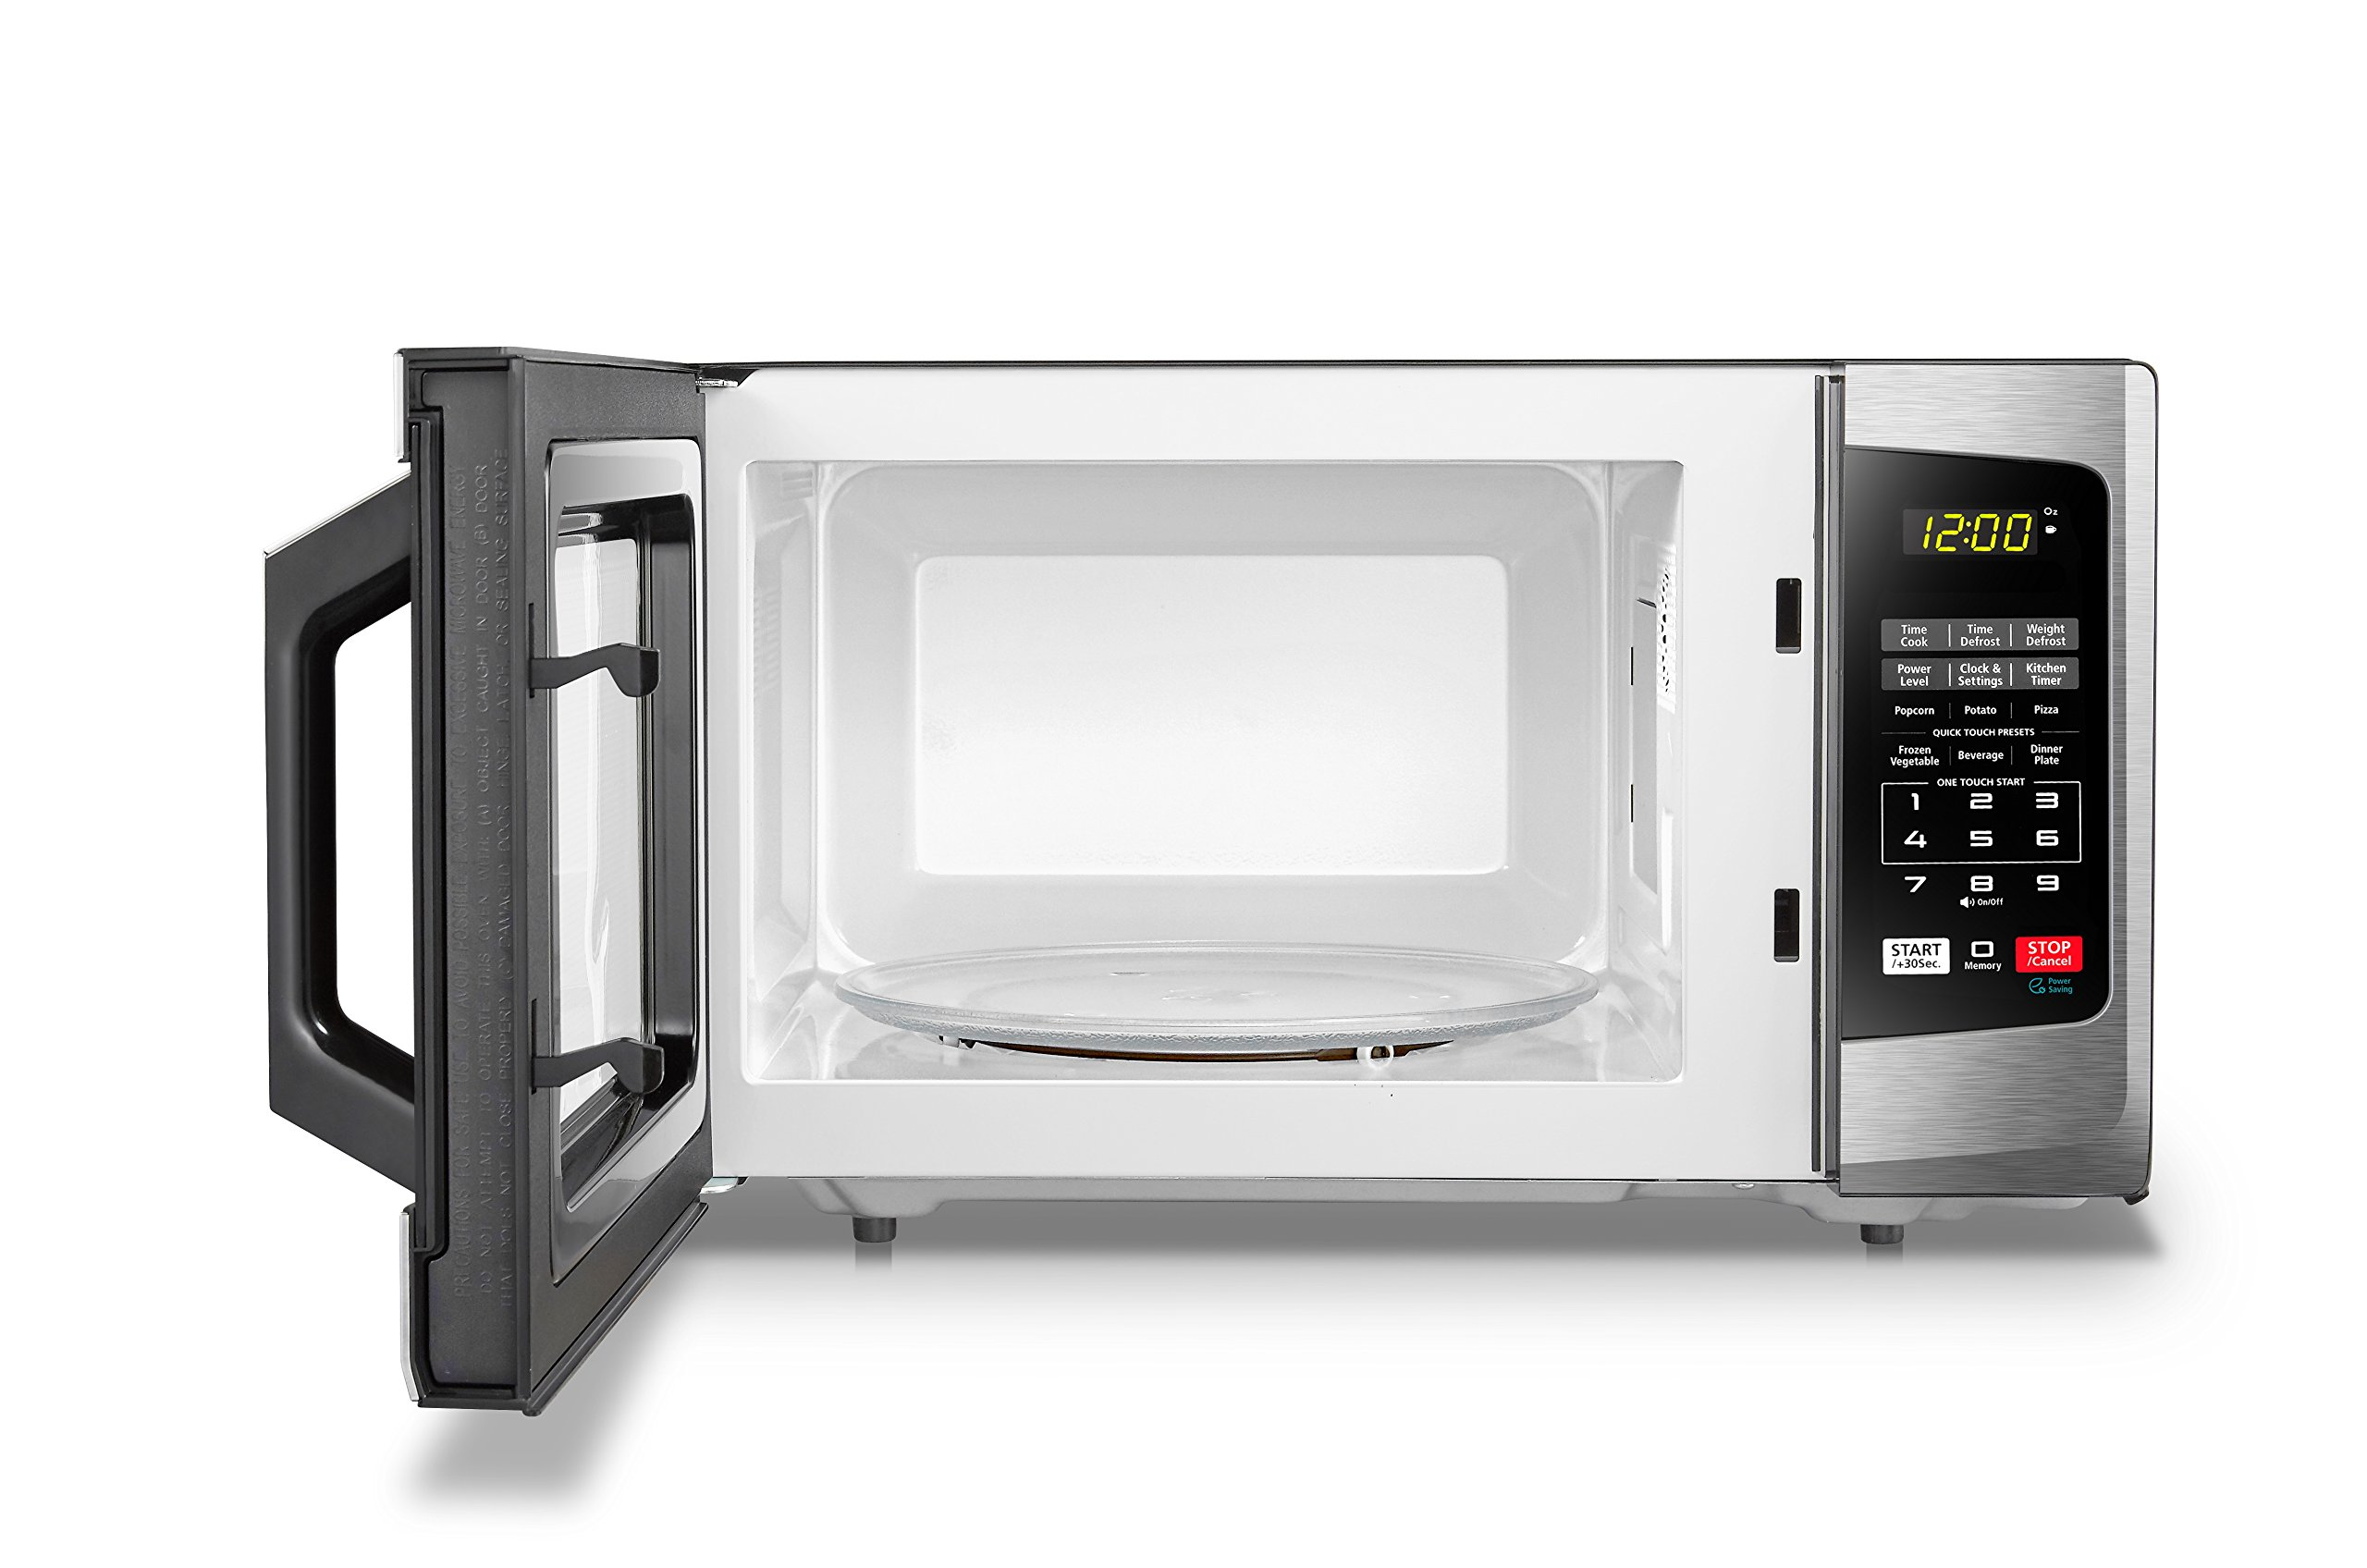 Toshiba EM925A5A-SS Microwave Oven with Sound On/Off ECO Mode and LED Lighting 0.9 cu. ft. Stainless Steel by Toshiba (Image #7)